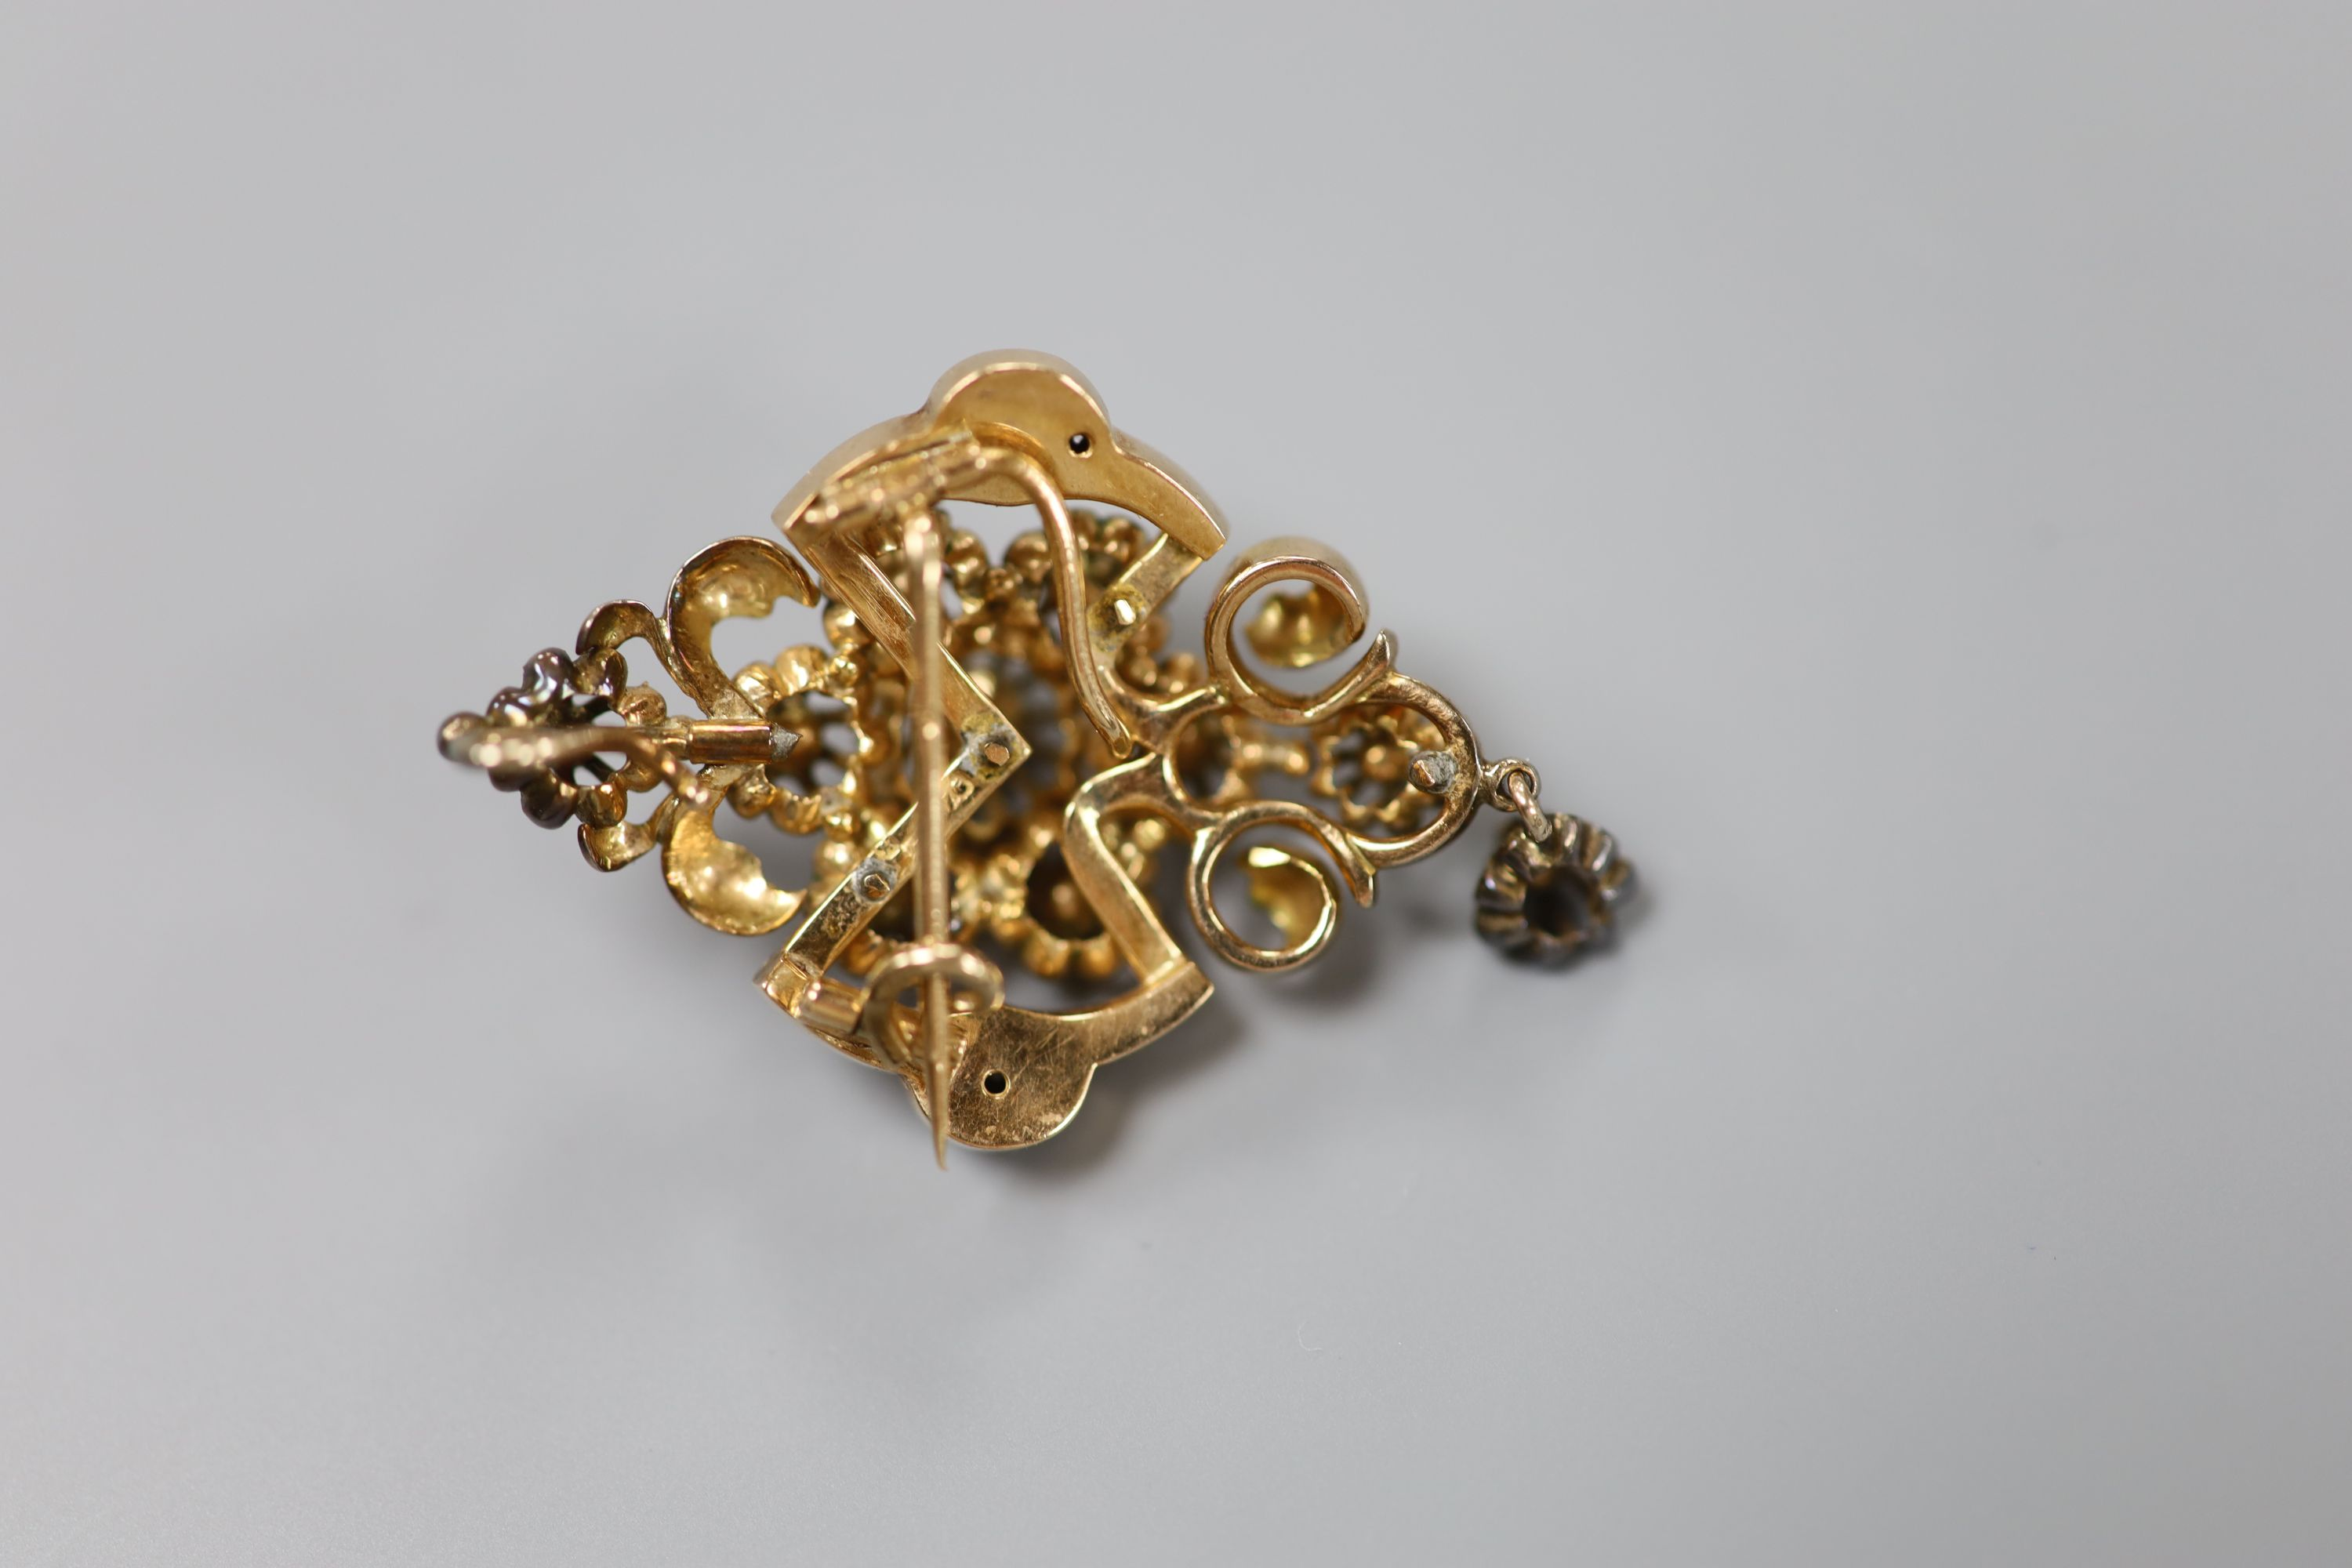 A late 19th/early 20th century Austro-Hungarian yellow metal and rose cut diamond set drop pendant - Image 3 of 3